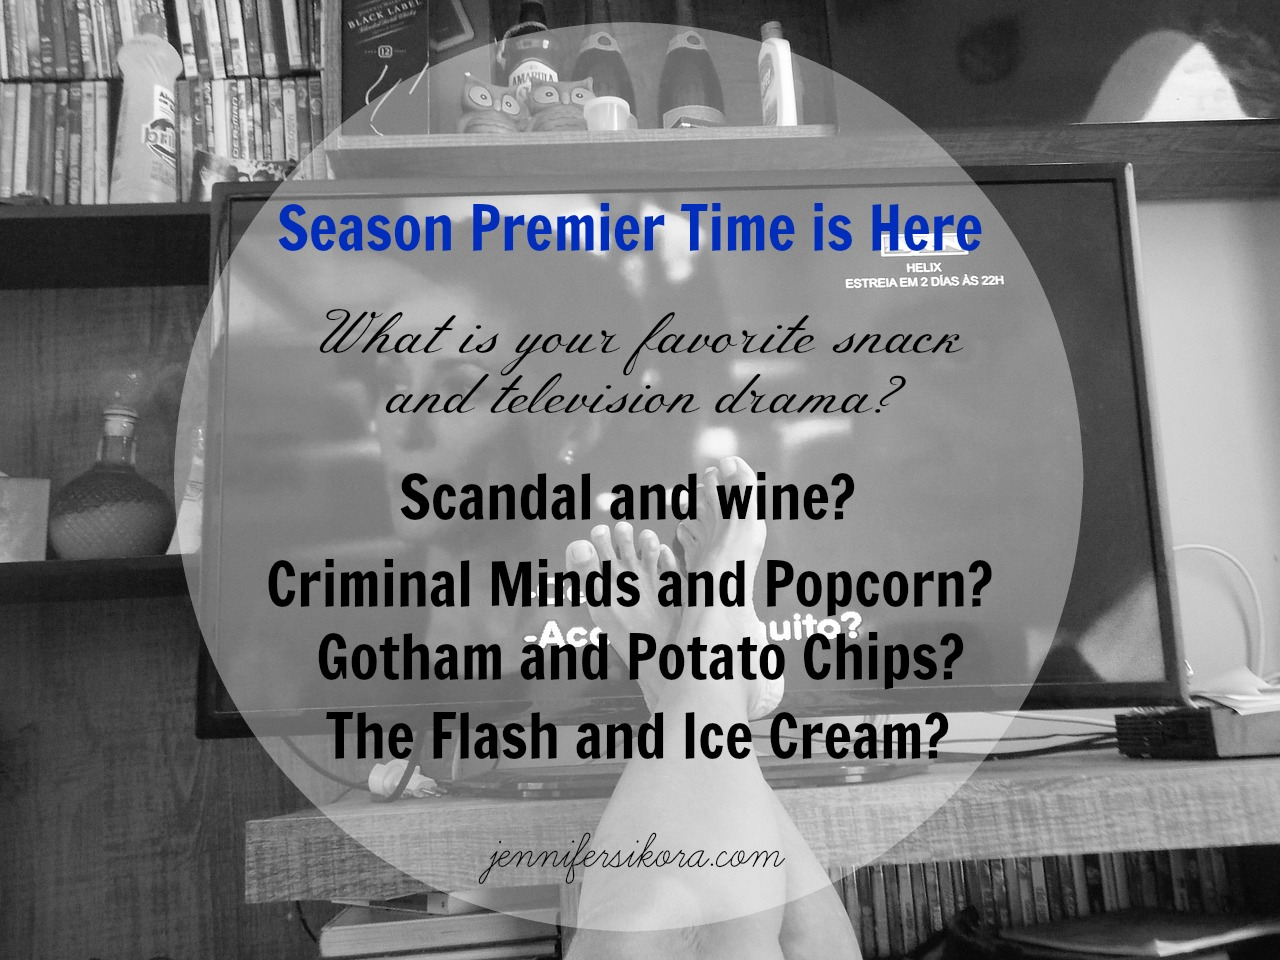 What is Your Favorite Snack for Season Premier Month?